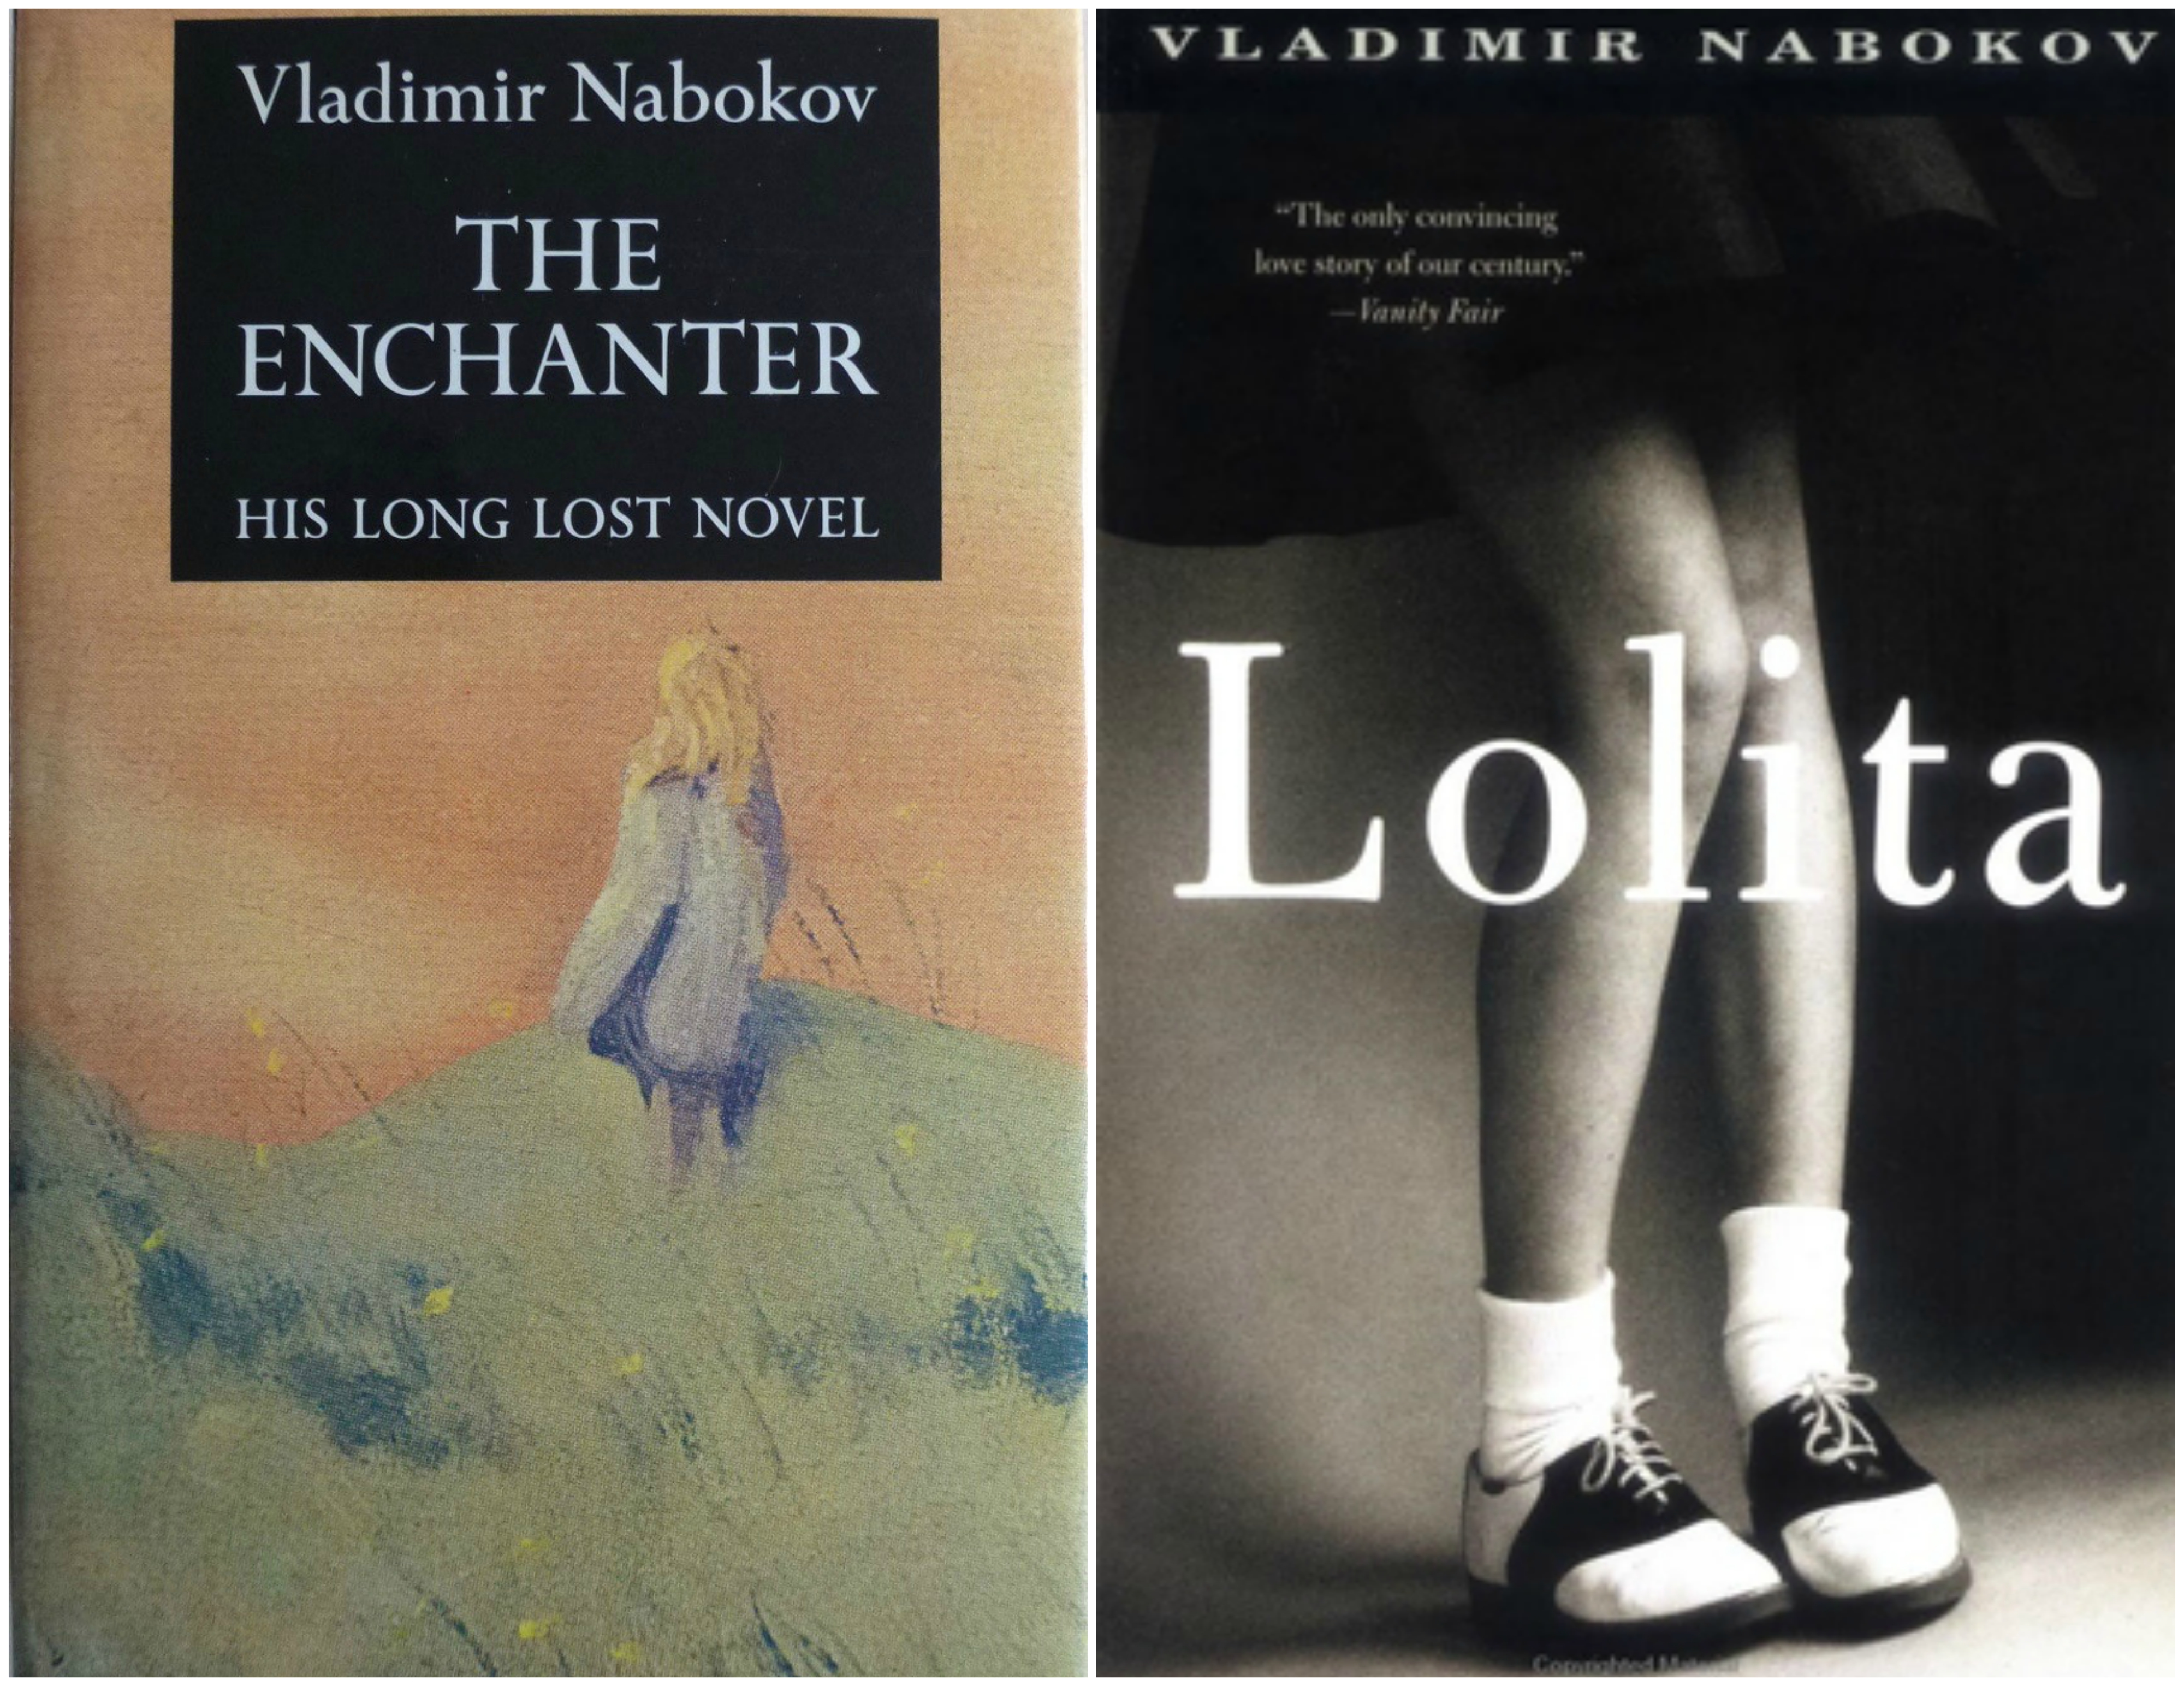 vladimir nabokov the enchanter lolita